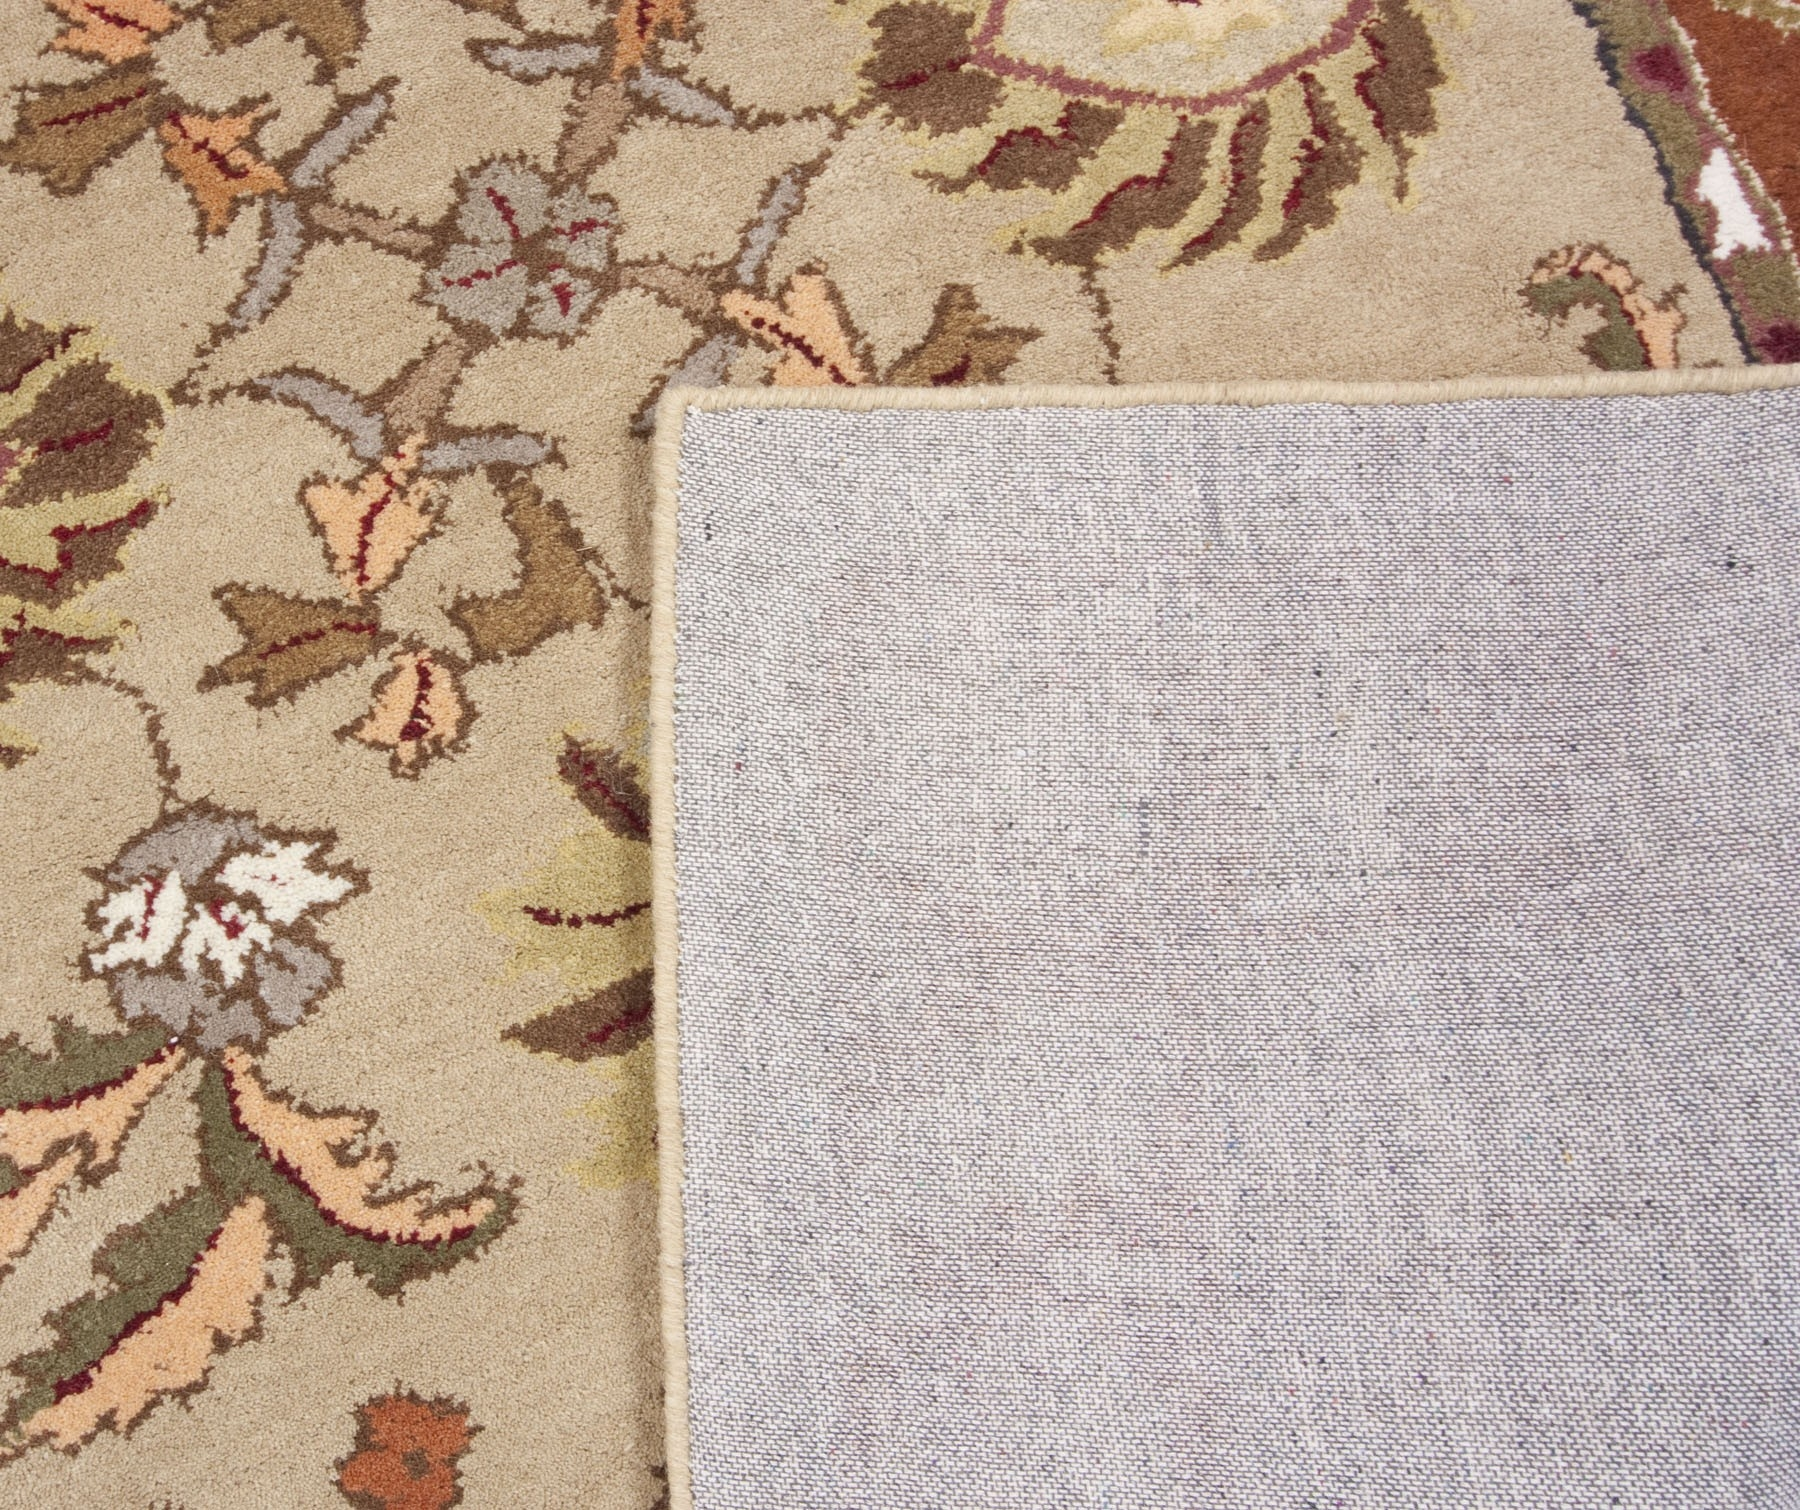 Beige Salmon Green Brown Hand Tufted Wool Area Rug Traditional Regarding Hand Tufted Wool Area Rugs (#1 of 15)